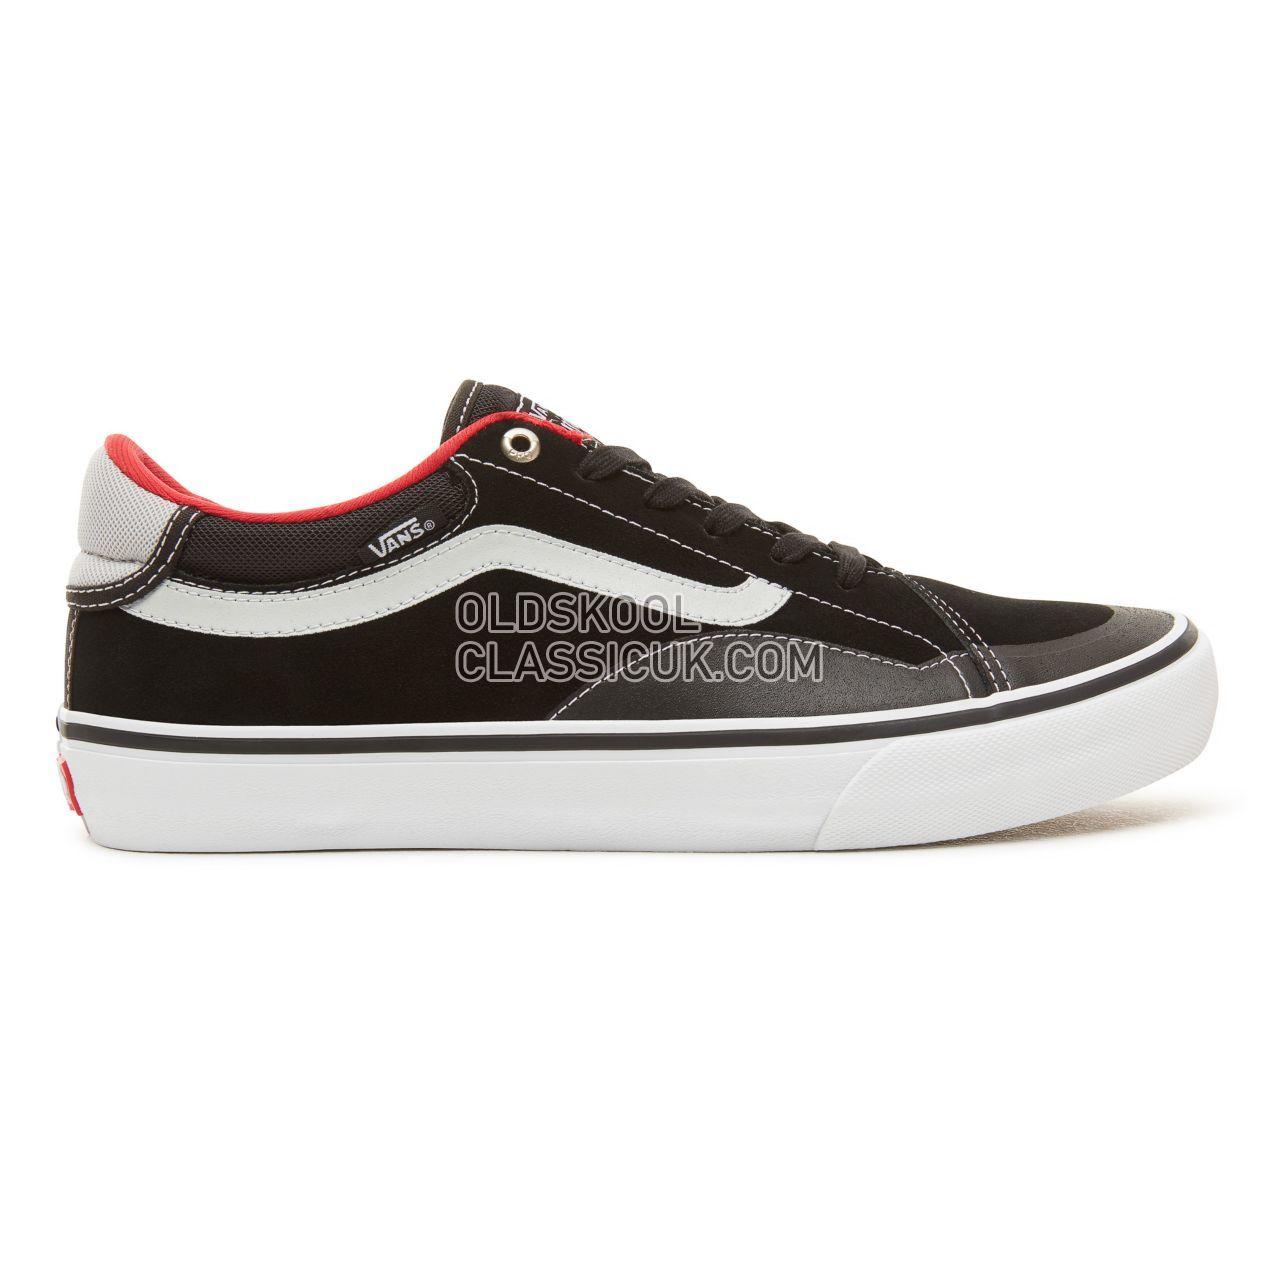 Vans TNT Advanced Prototype Pro Sneakers Mens Black/White/Red VN0A3TJXBWT Shoes